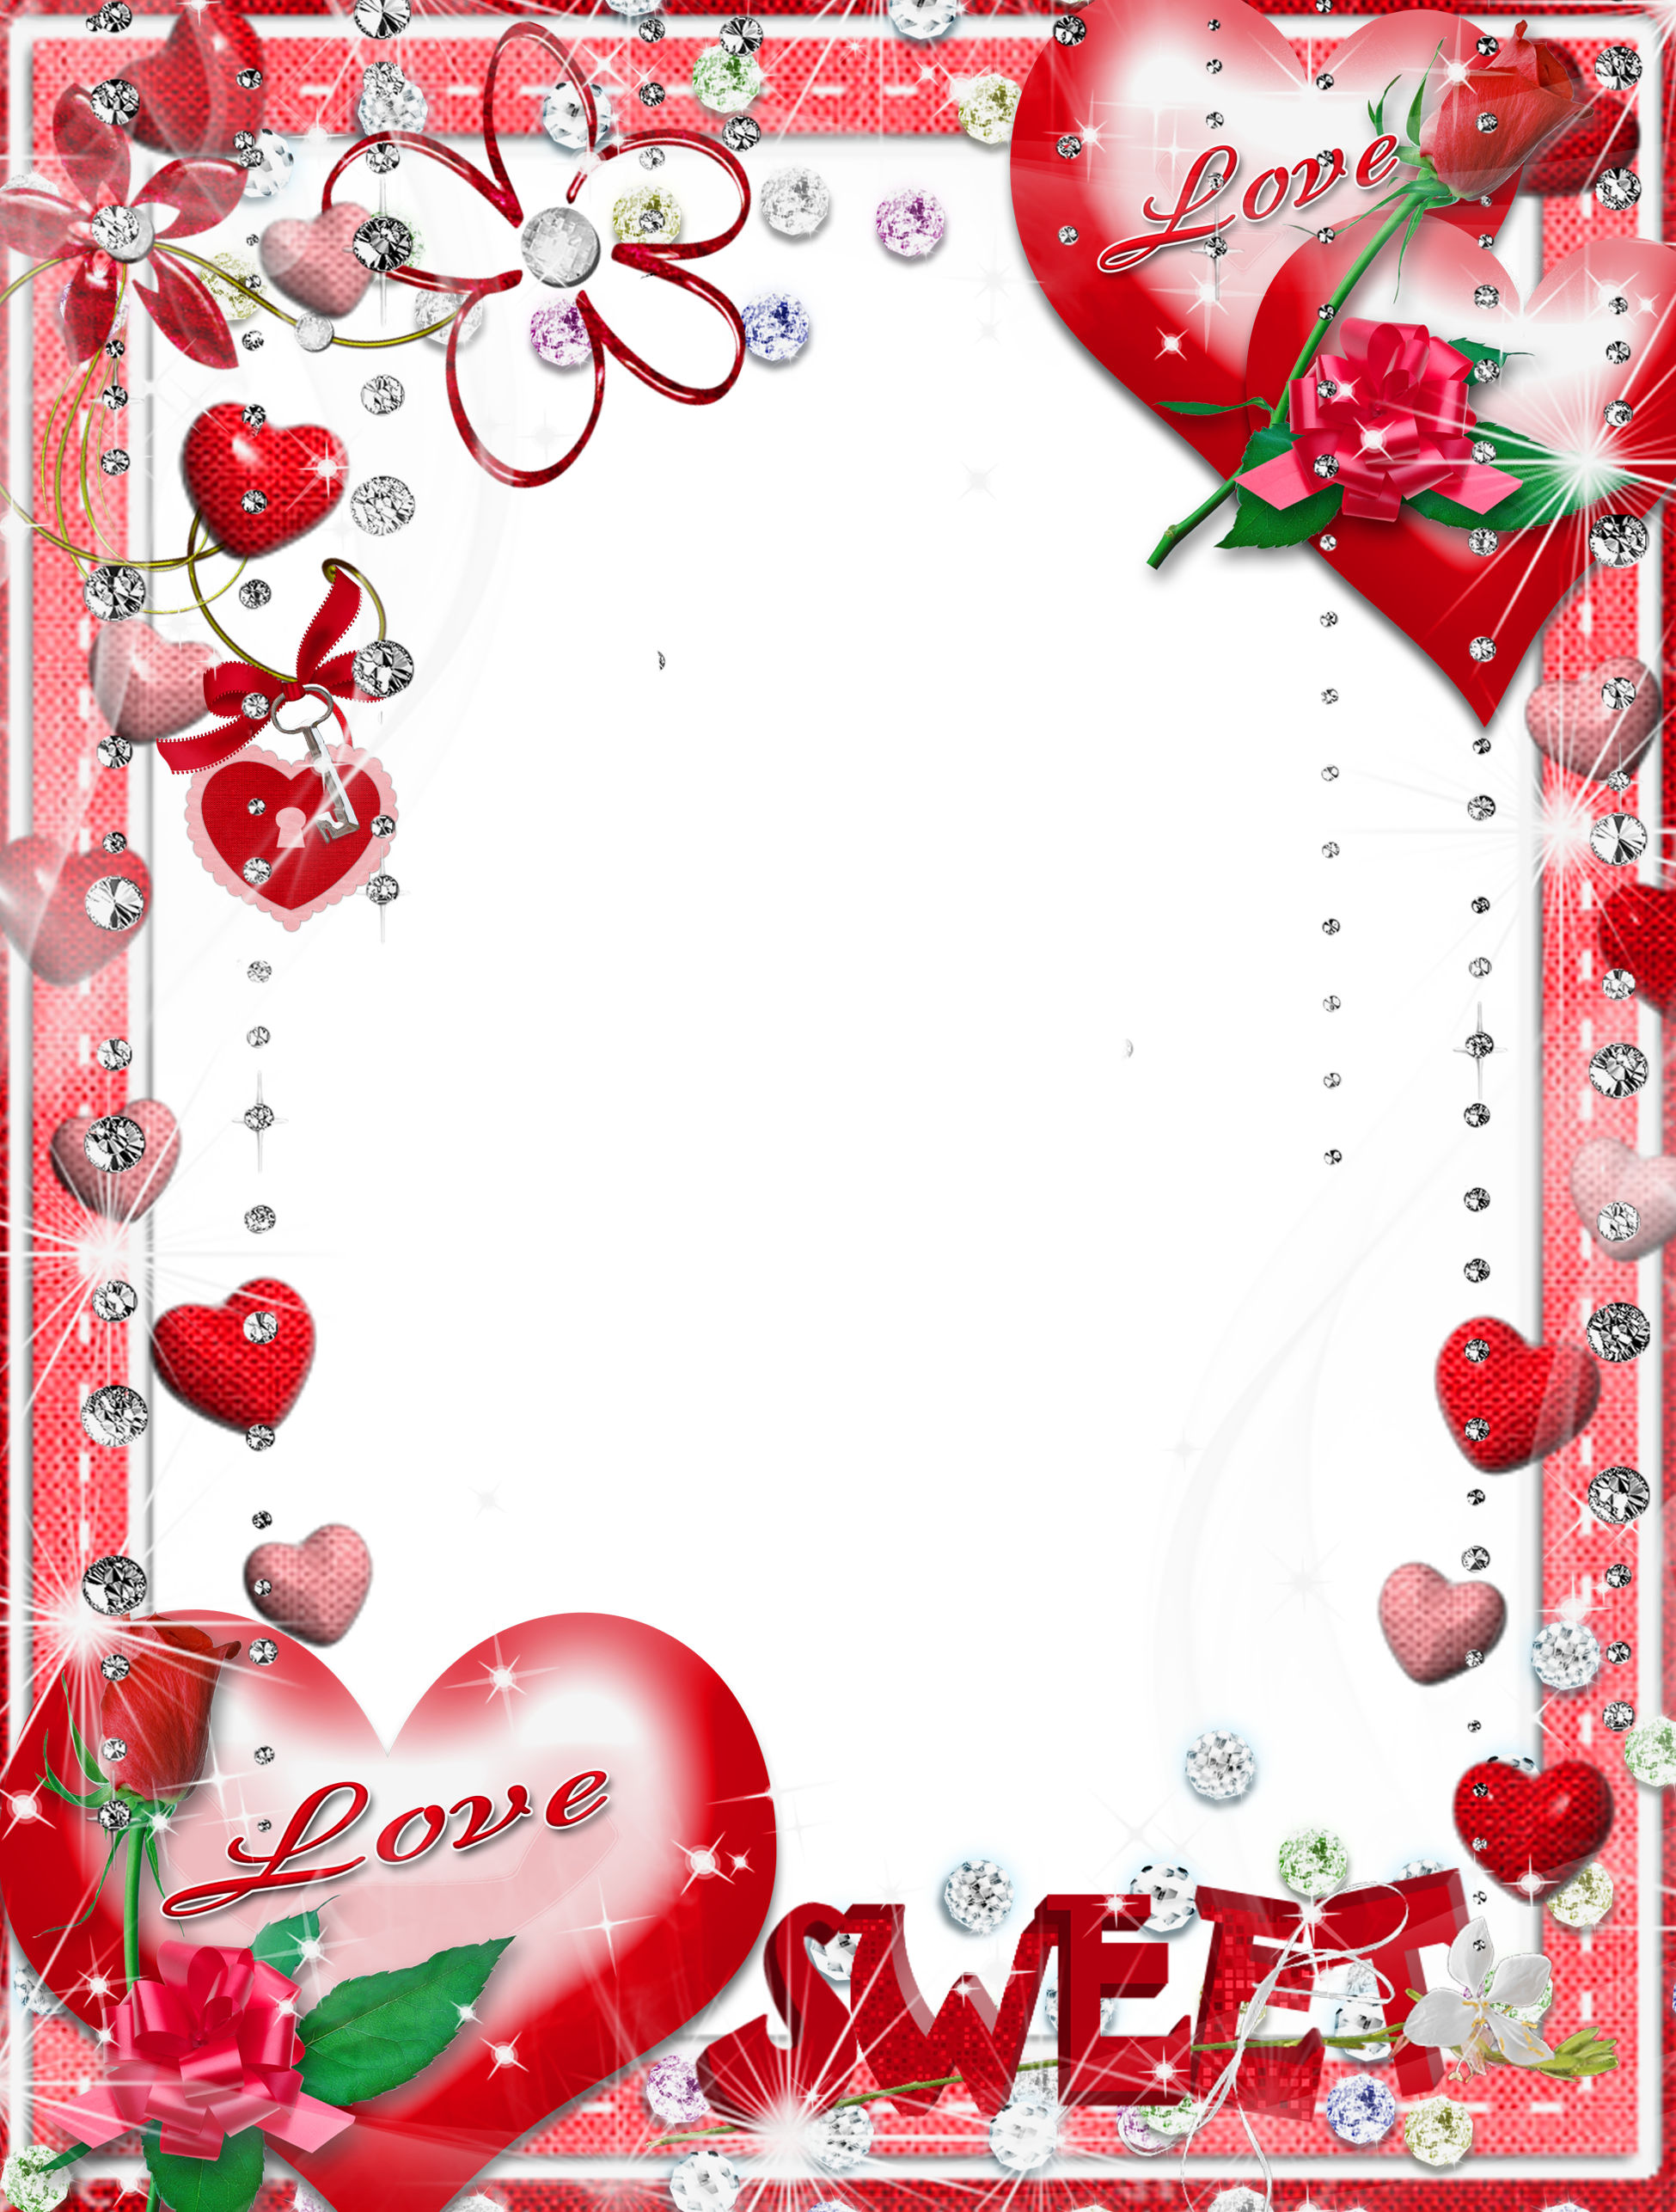 Love photo frame png. Sweet transparent gallery yopriceville